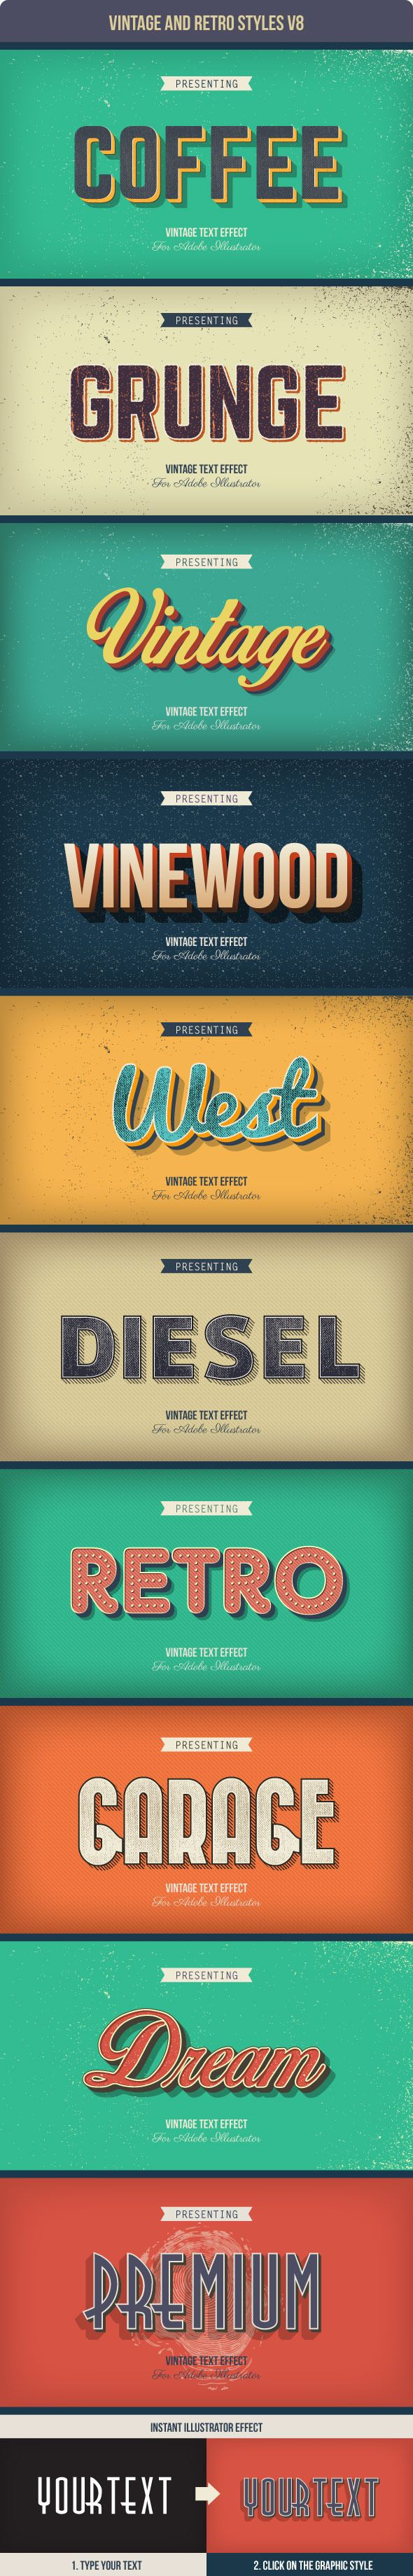 Vintage and Retro Text Styles for Adobe Illustrator #design #ai Download: http://graphicriver.net/item/vintage-and-retro-styles-v8/10418986?ref=ksioks